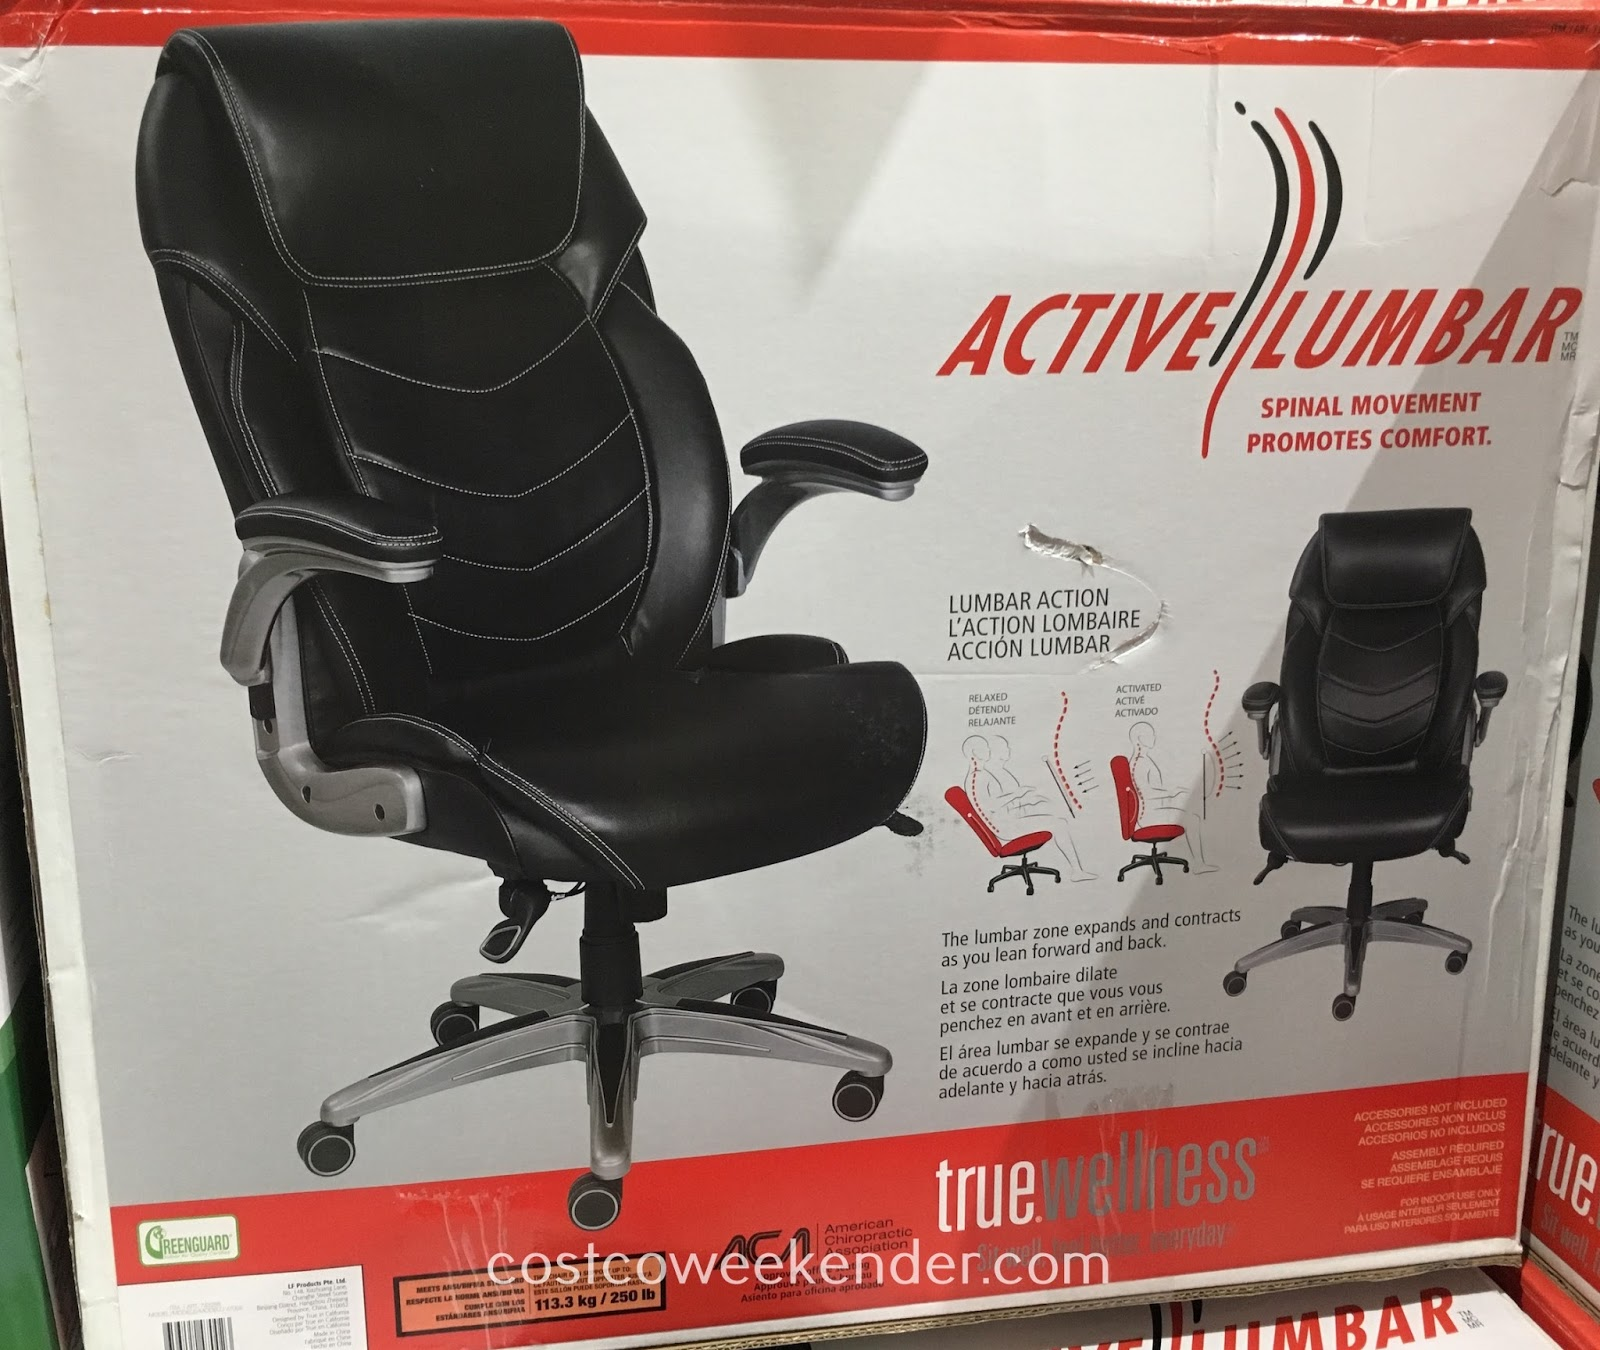 True Innovations True Wellness Active Lumbar Chair Costco Weekender